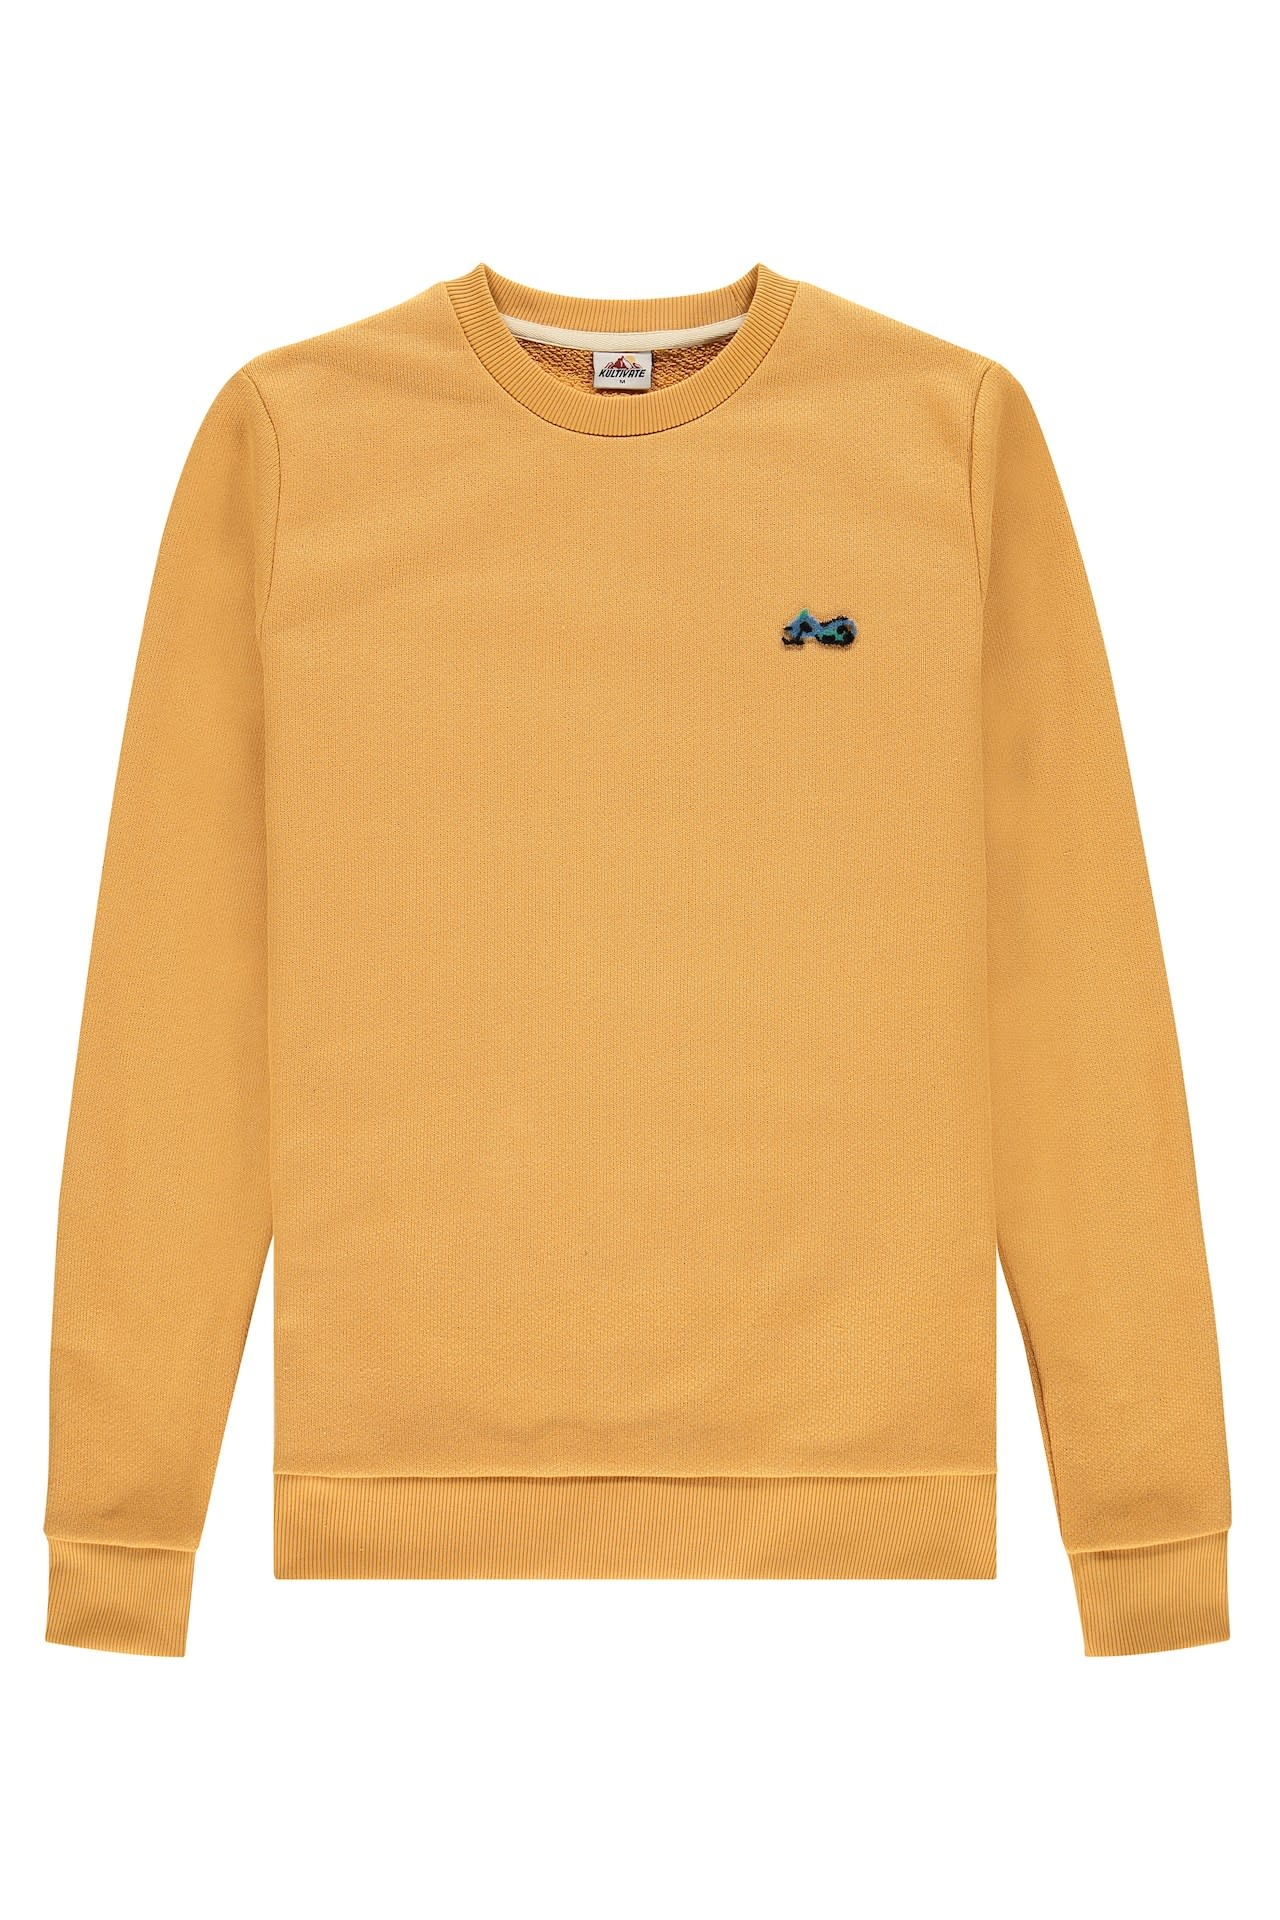 Kultivate Kultivate Snowmobile Sweater Honey Yellow